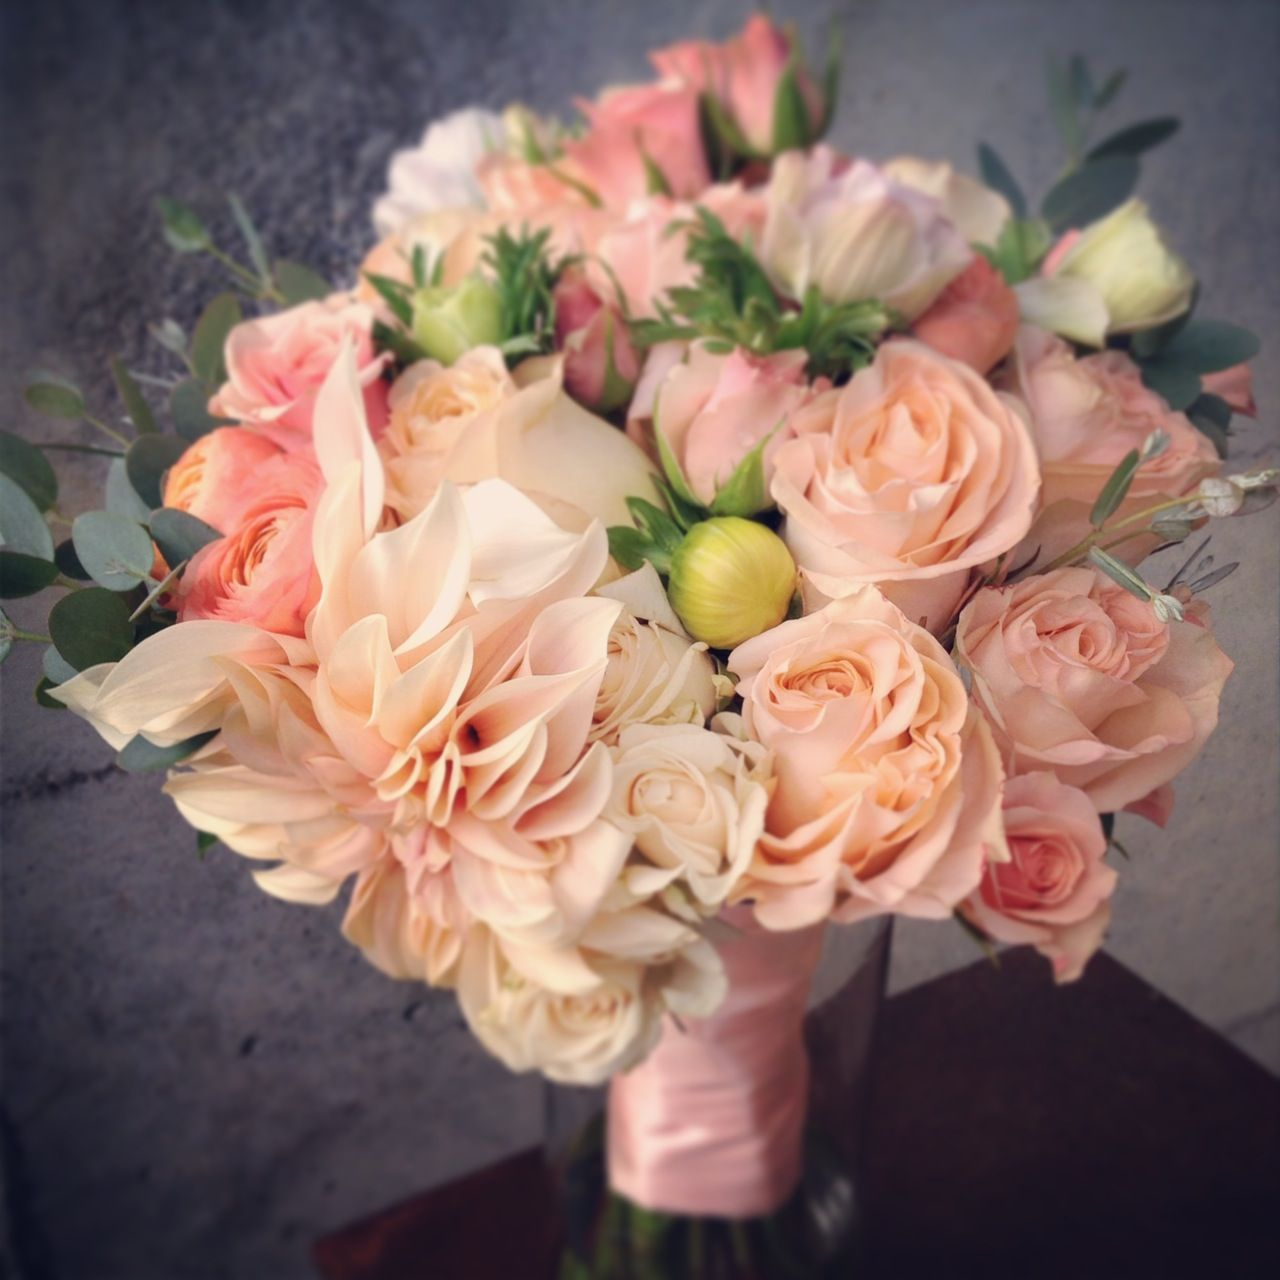 Interesting Peach Garden Rose Bouquet Dahlias White Beige For Design